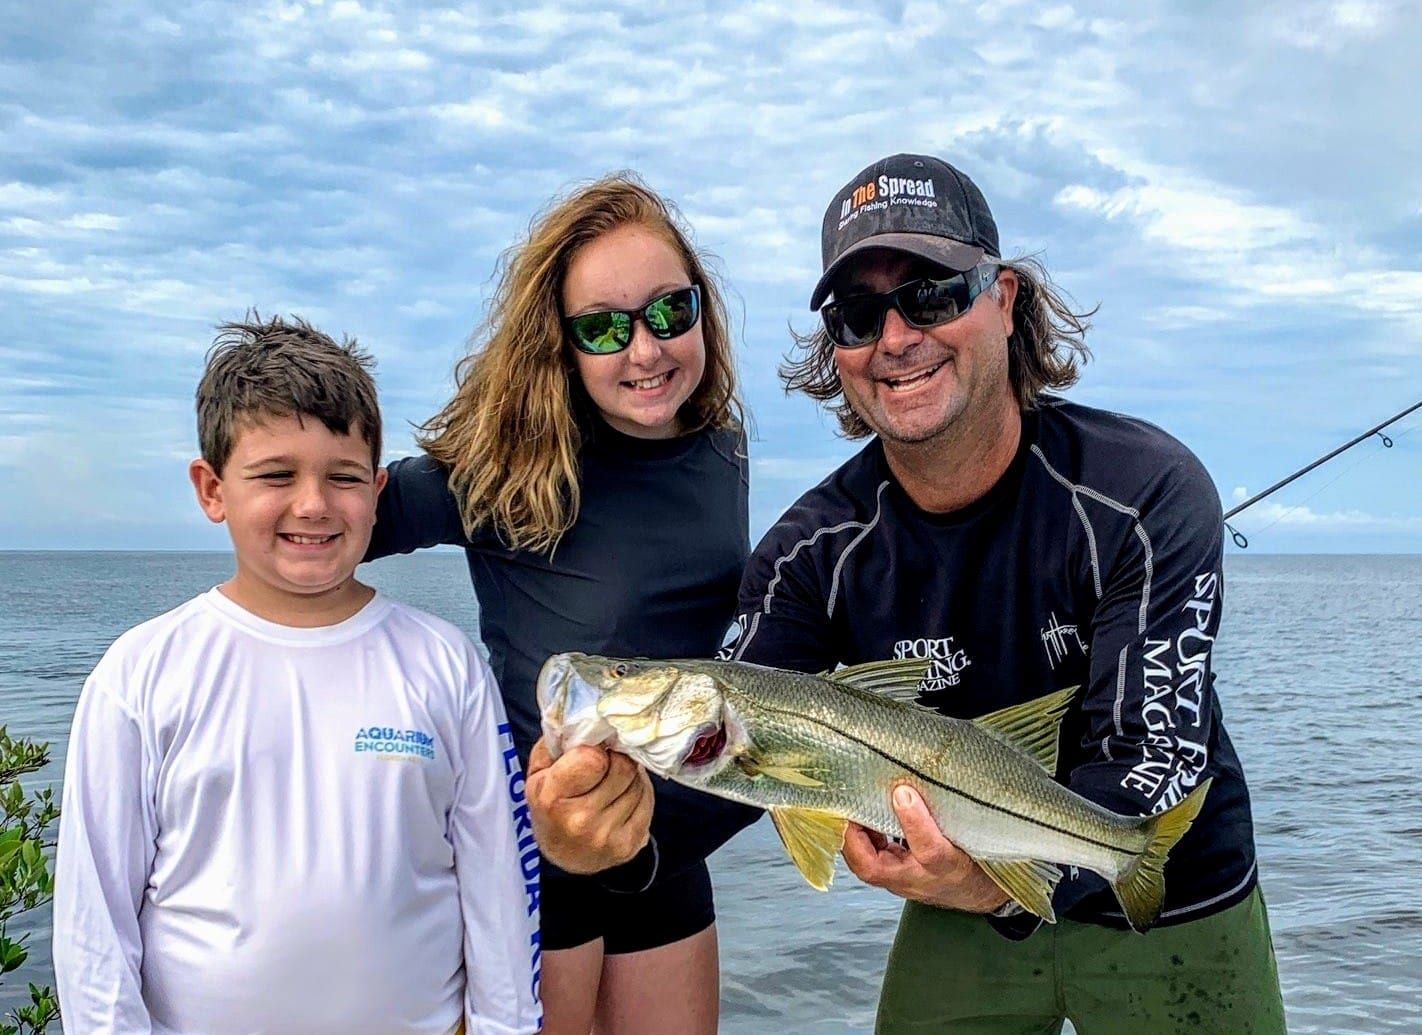 Captain William Toney, a fourth-generation captain in Homosassa, helps people of all ages enjoy fishing through his Charters and educational endeavors. He is a member of the Homosassa Guides Association, another group committed to the Nature Coast Aquatic Preserve.